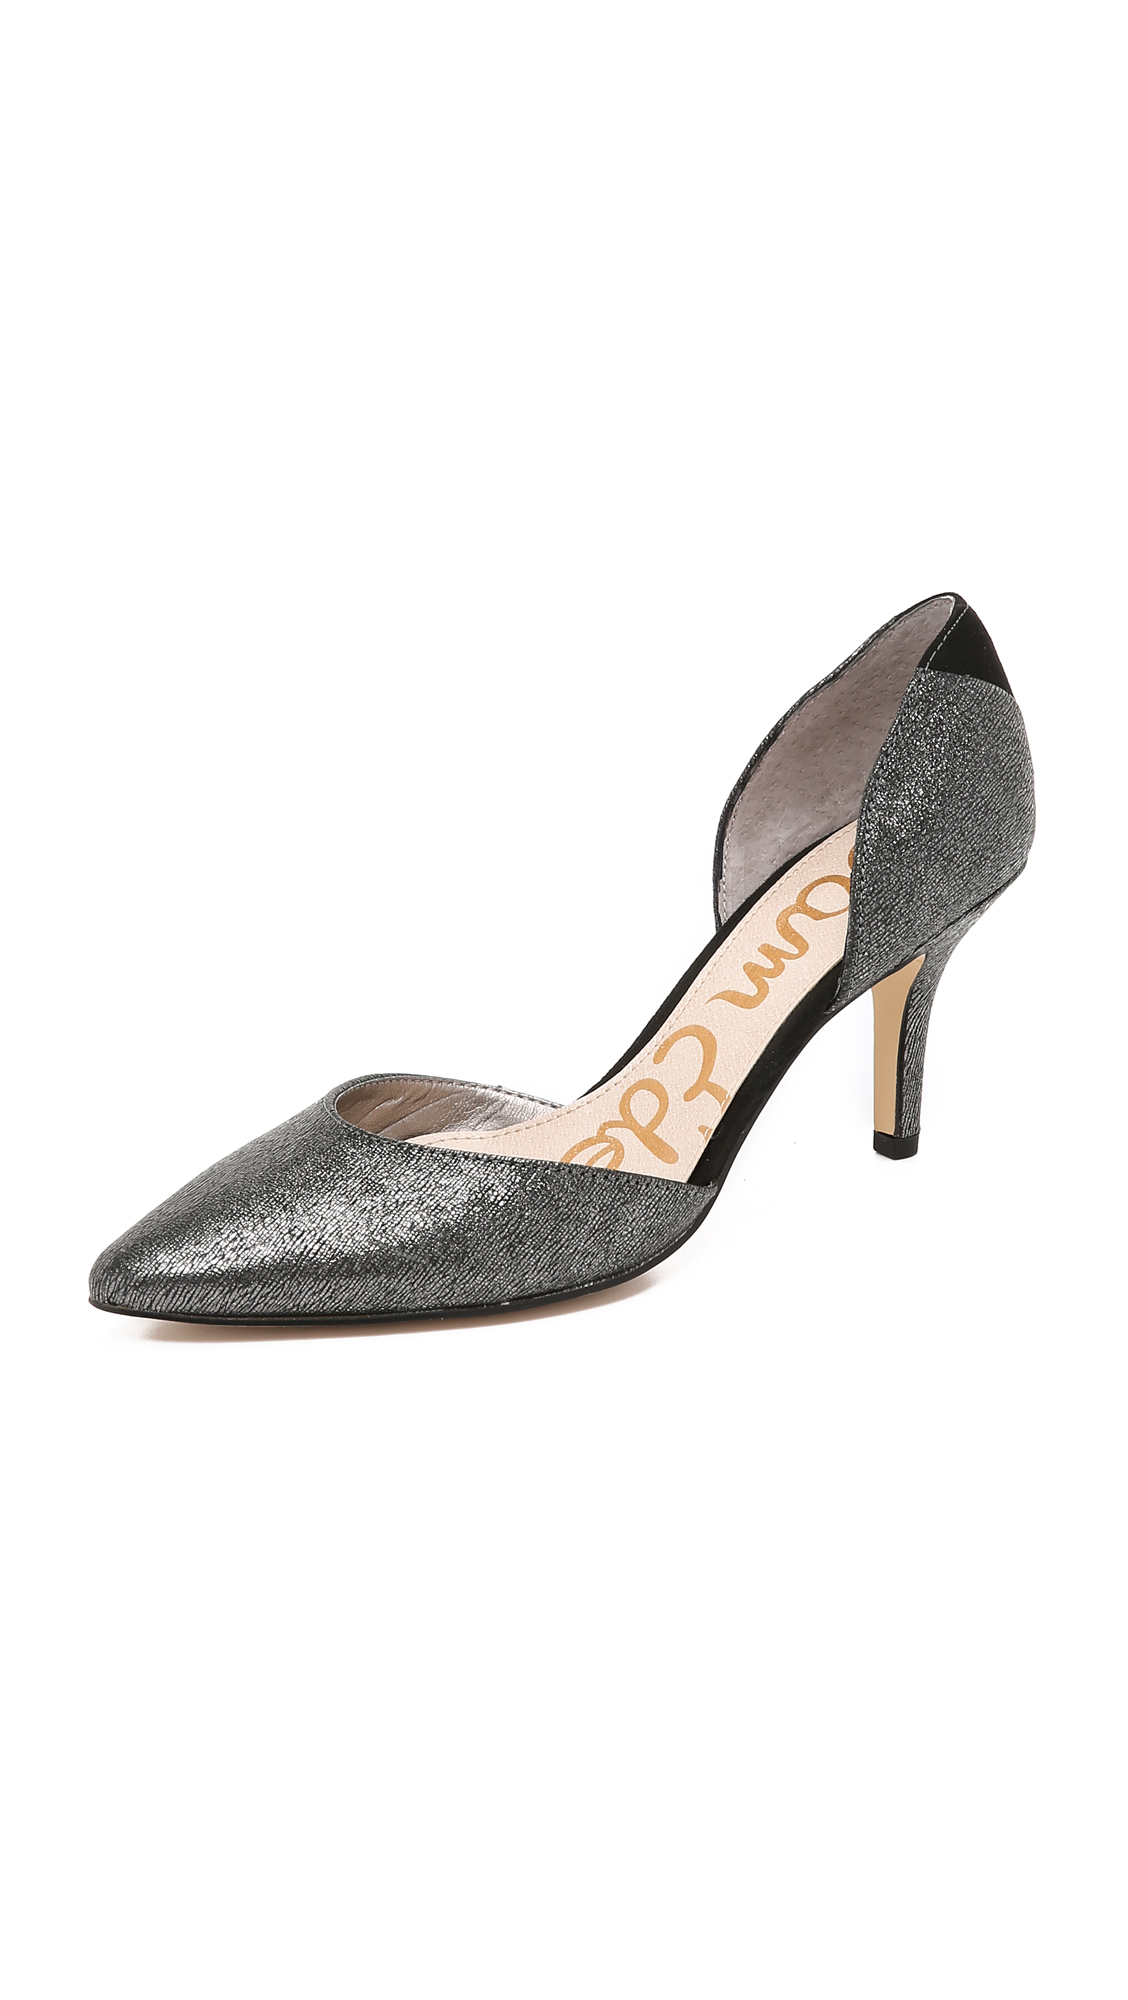 Lyst Sam Edelman Opal D Orsay Pumps In Metallic